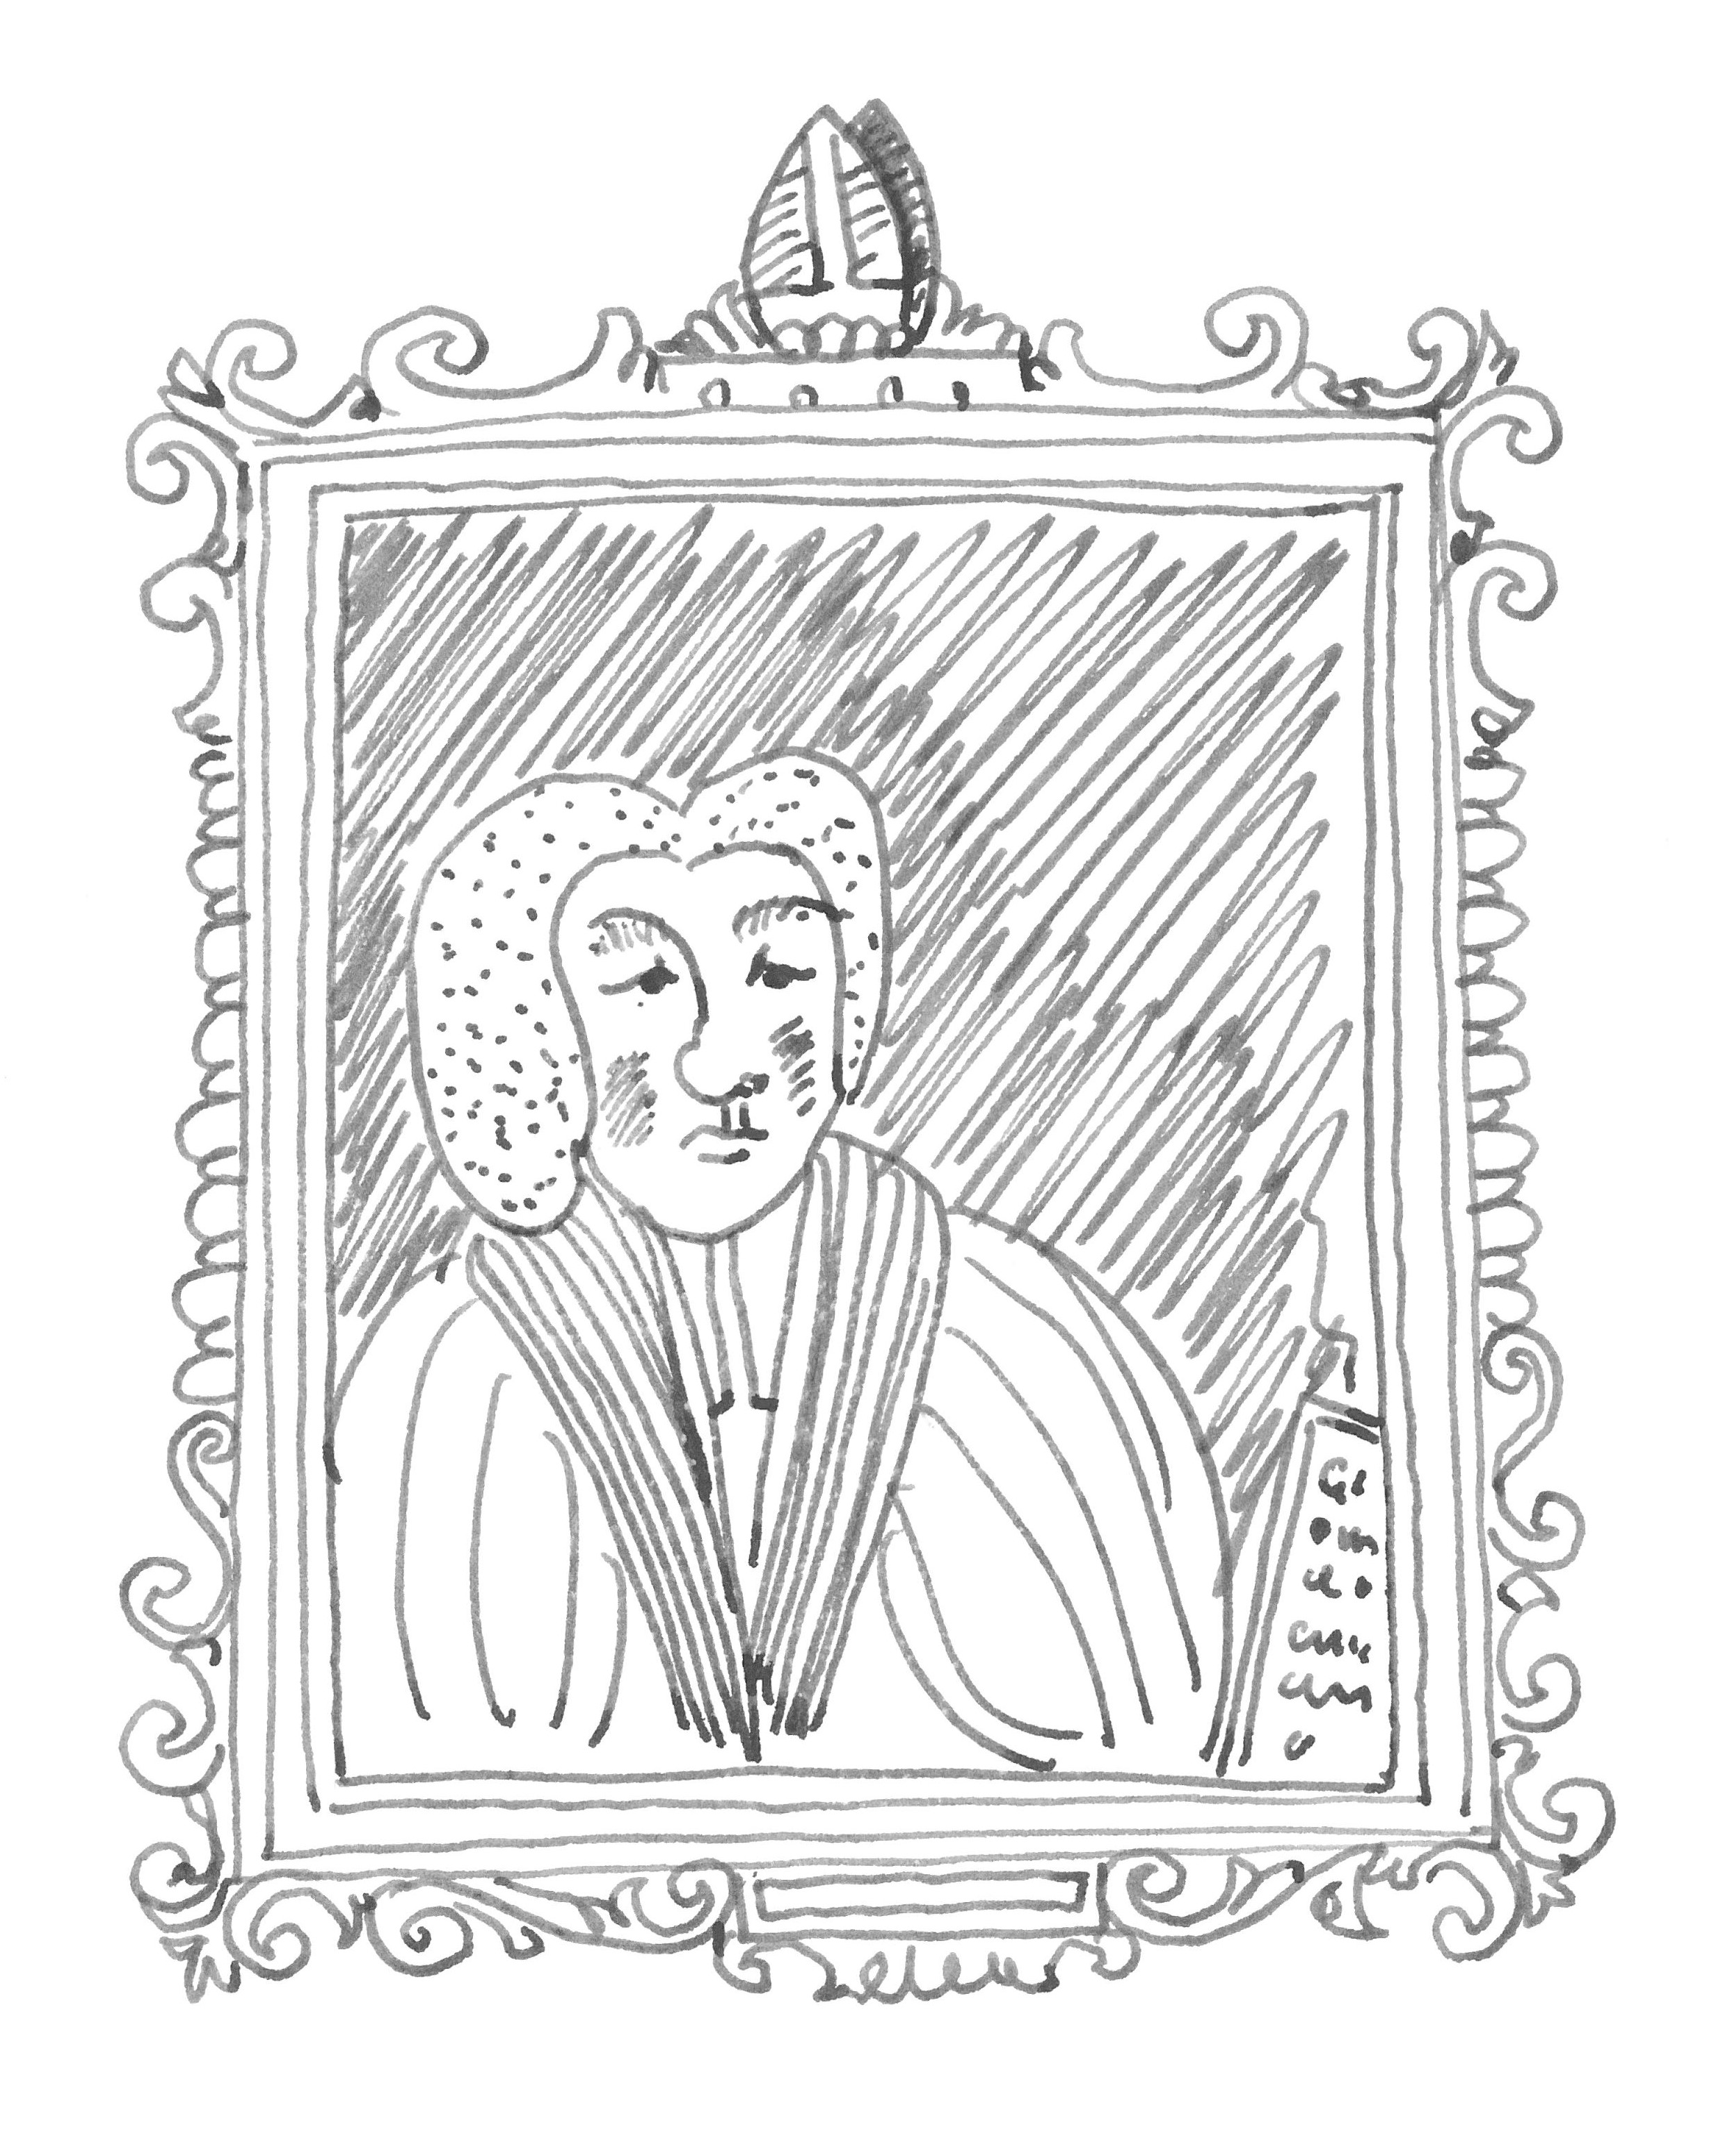 Parlour Portrait (After Zofany).jpg